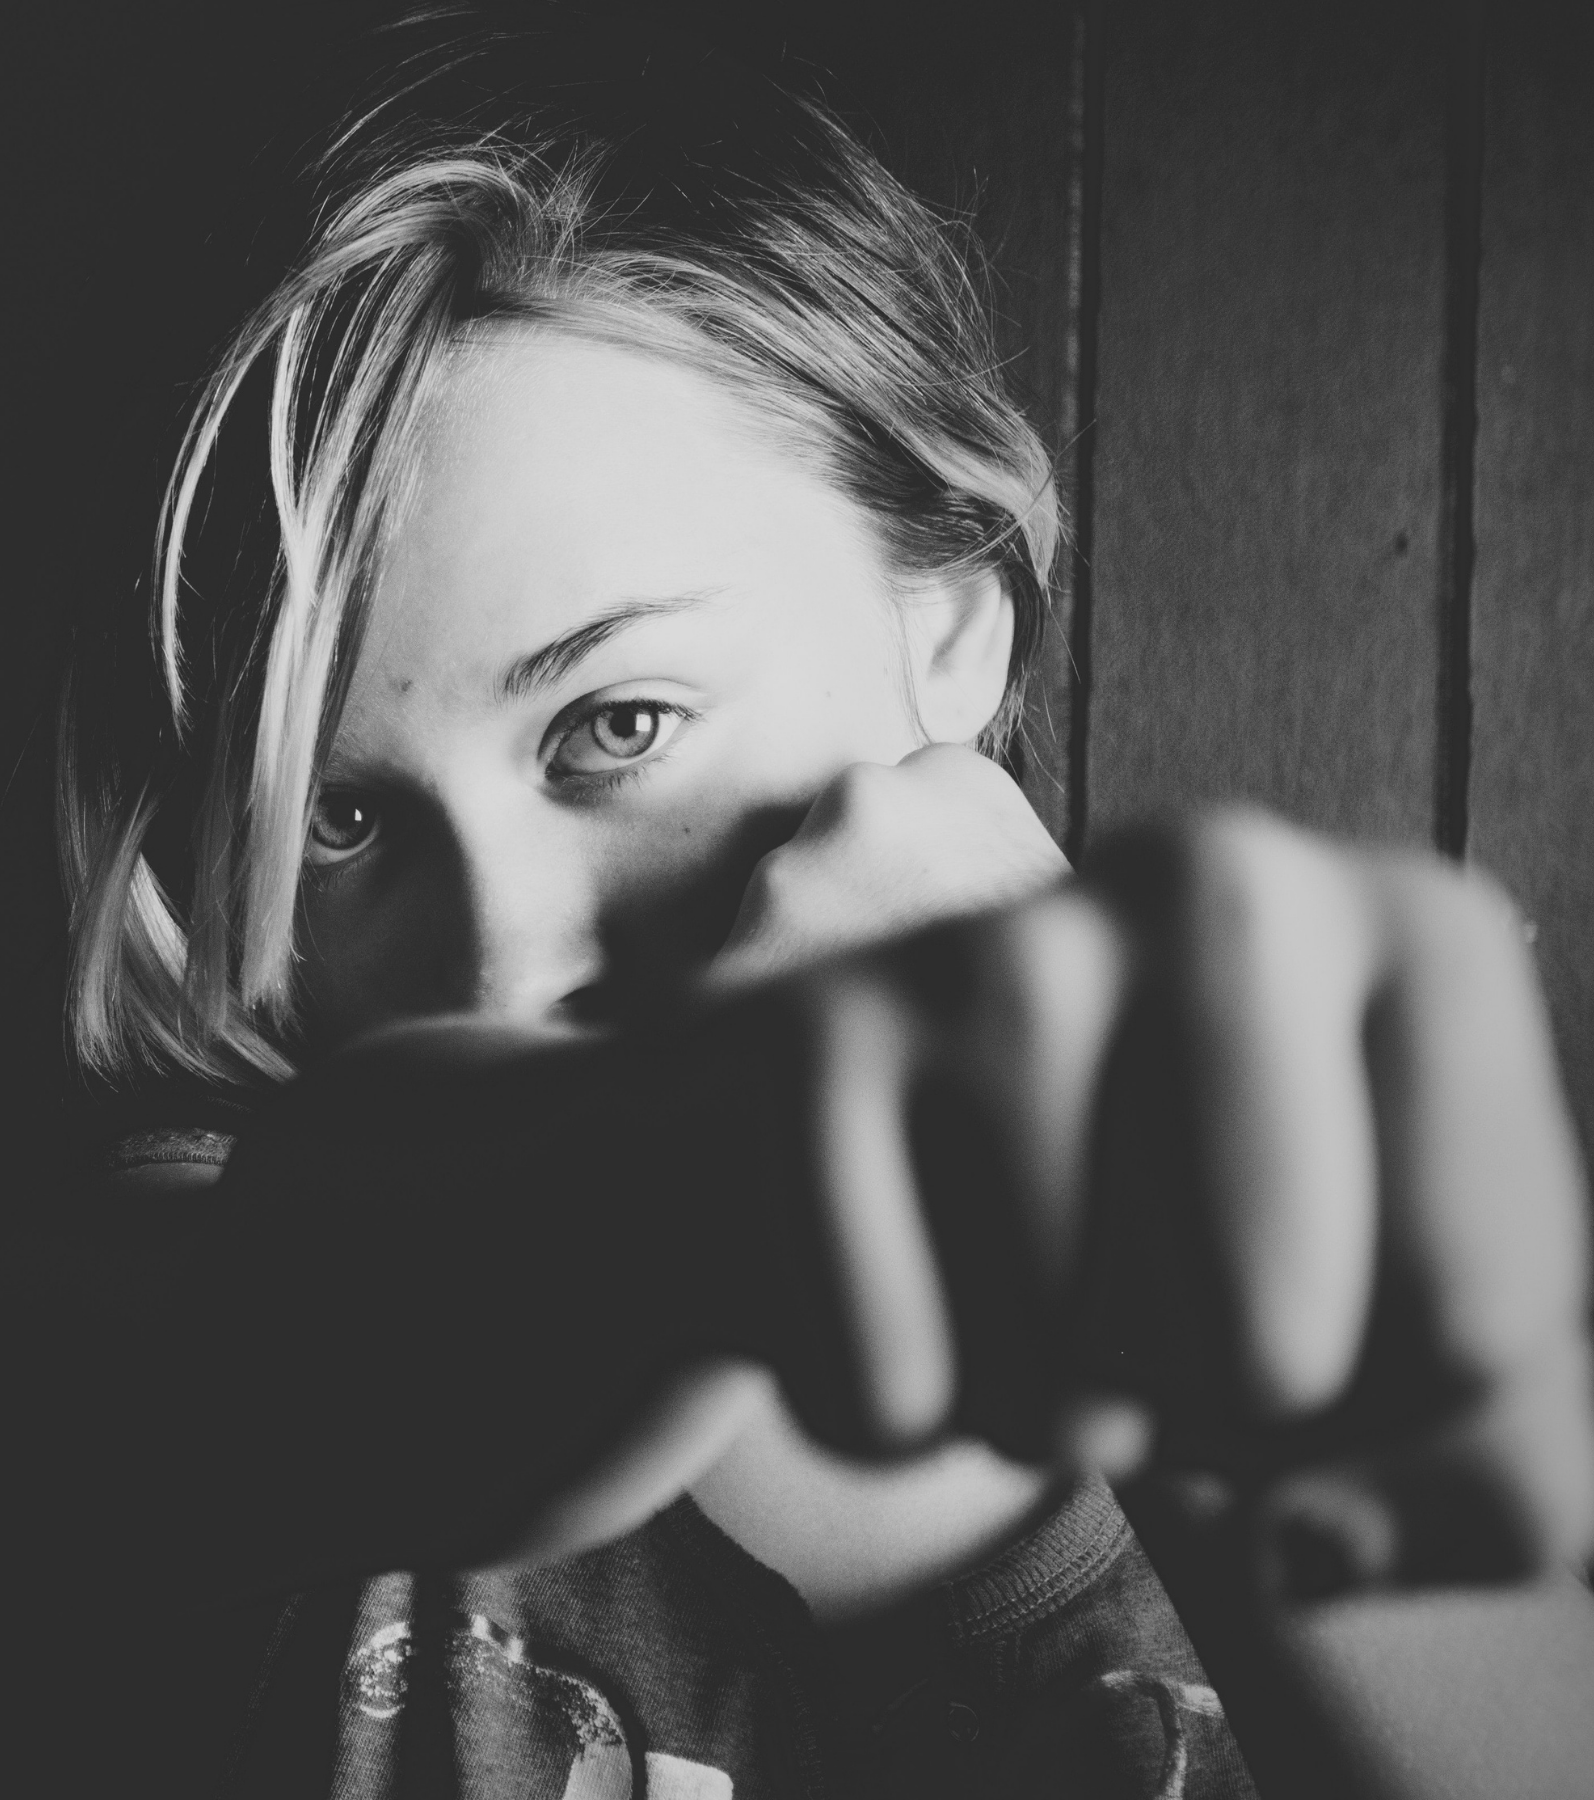 black and white photo of person punching